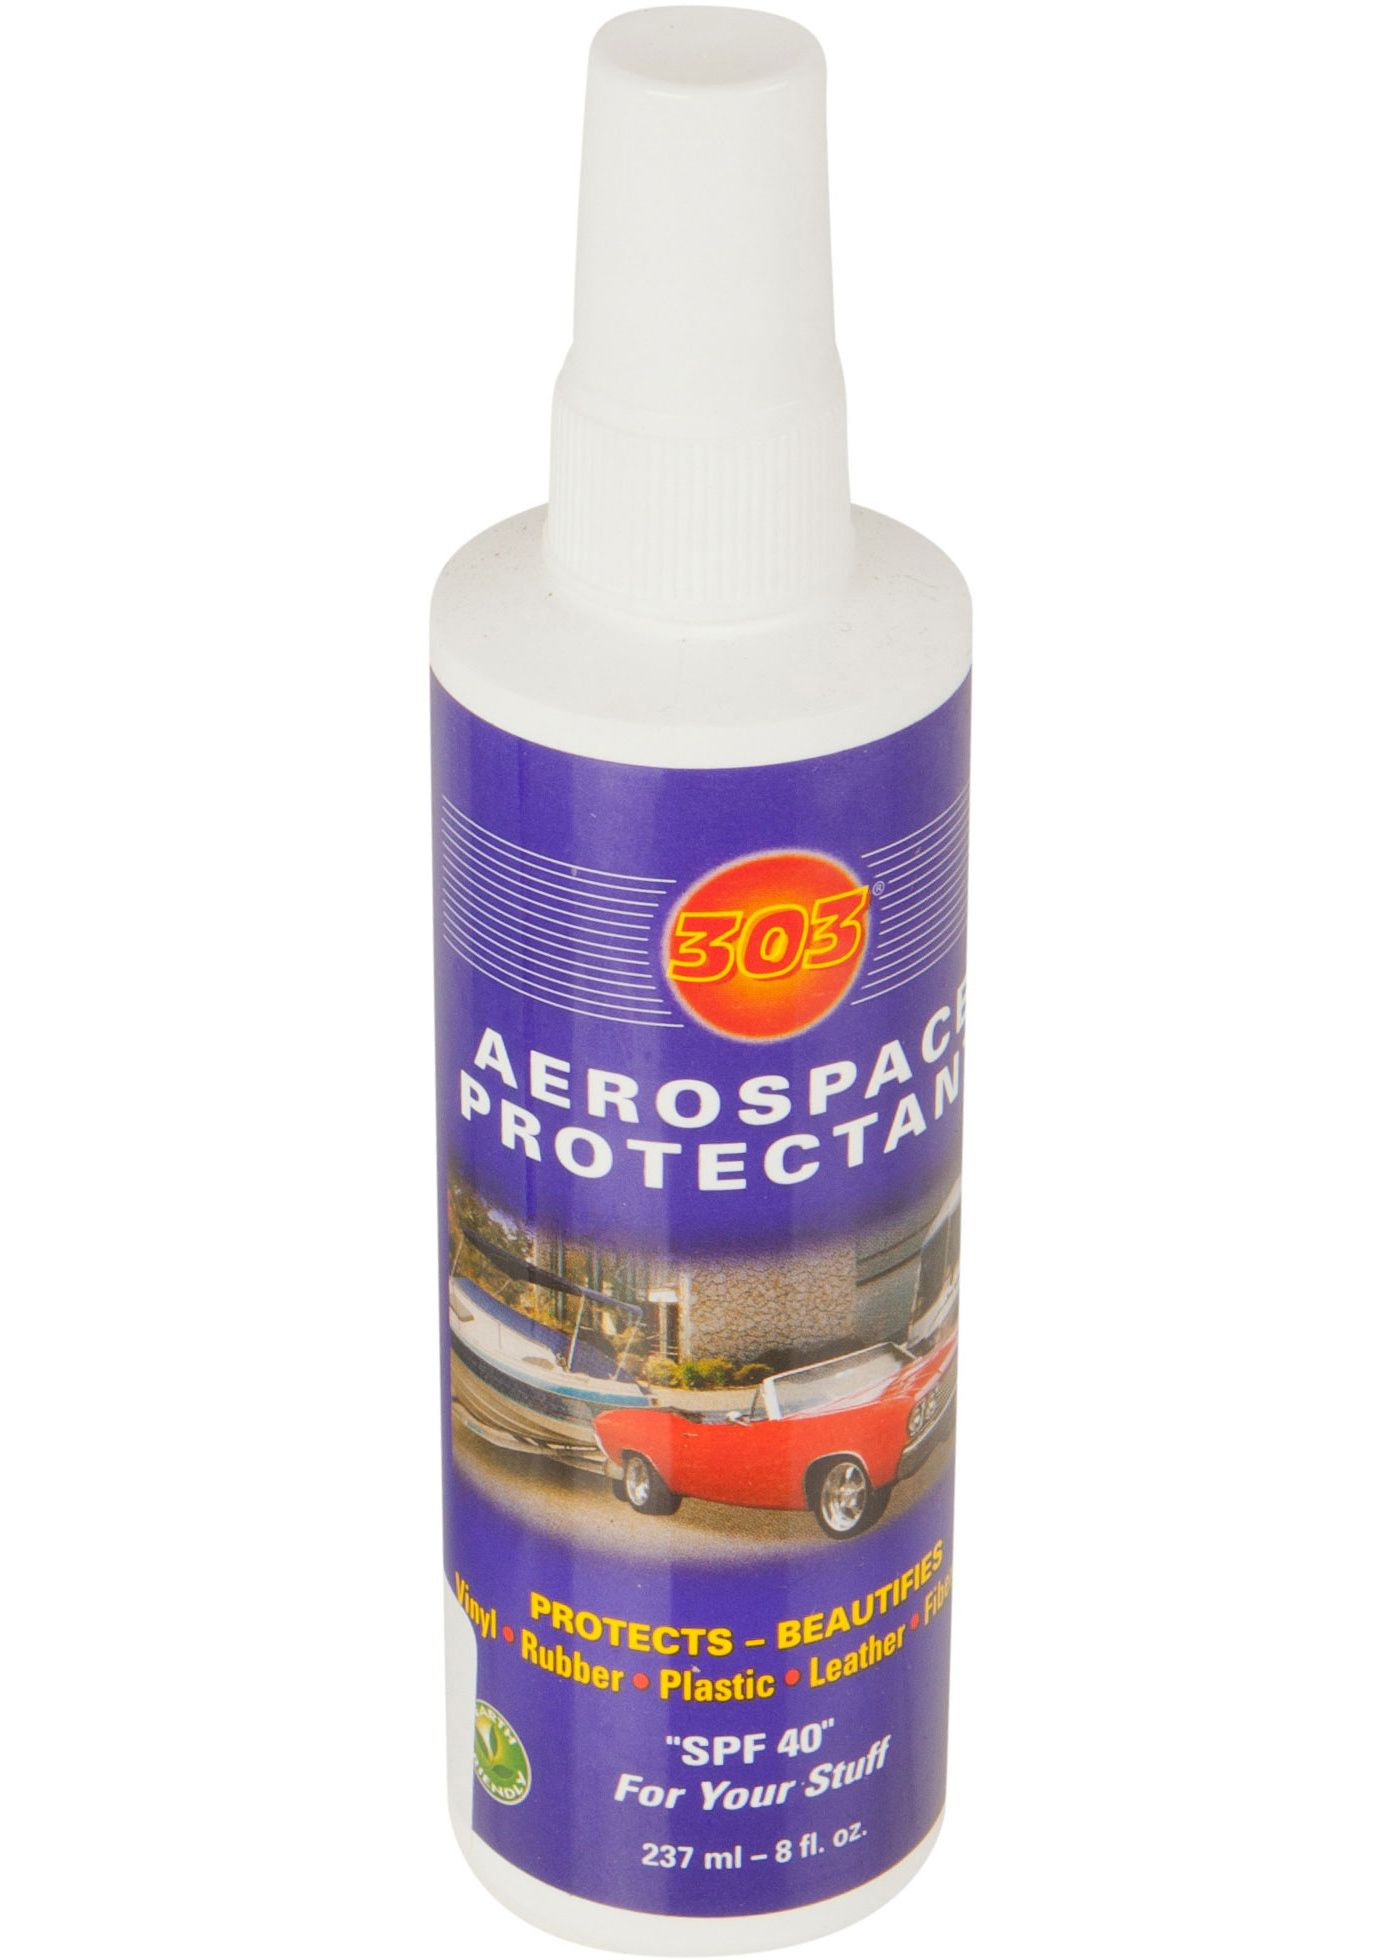 Harmony 303 Aerospace Protectant Spray